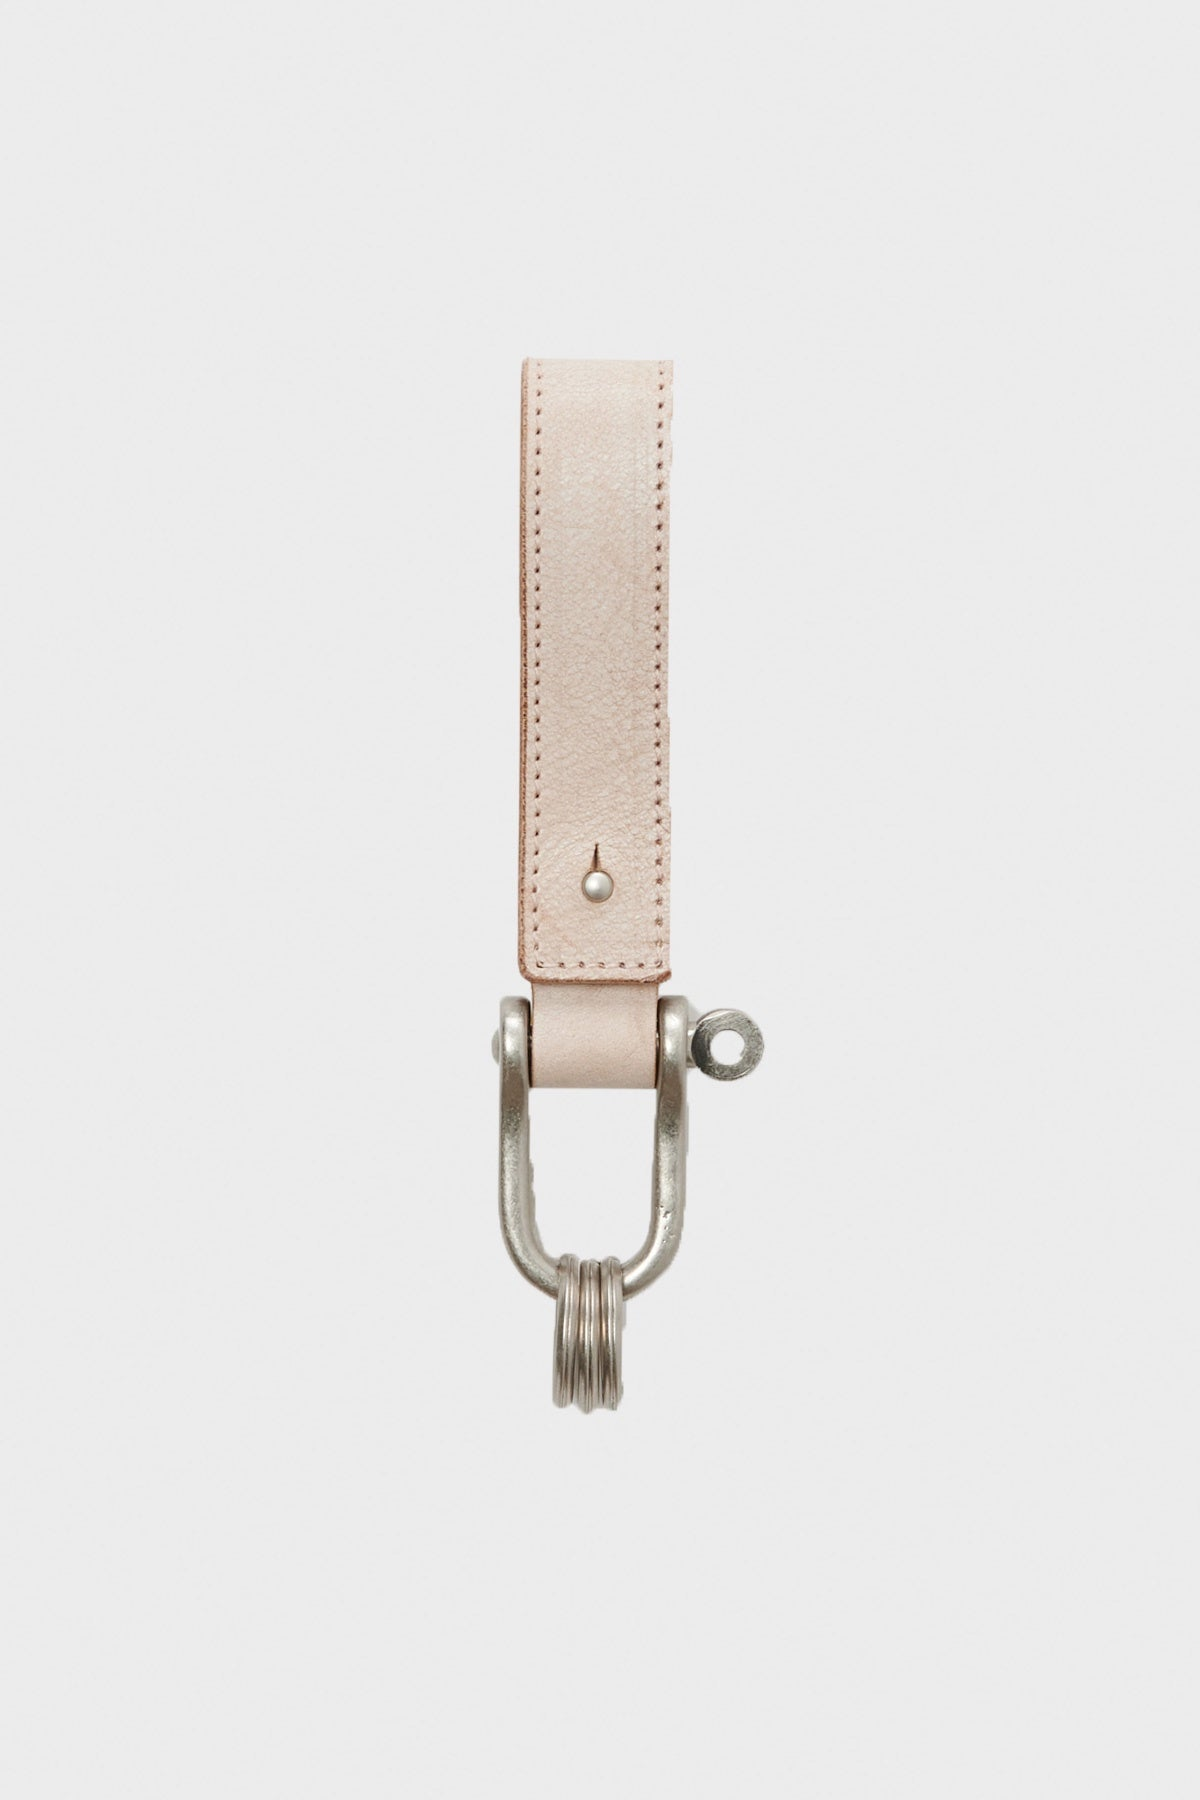 hender scheme Key Shackle - Ivory